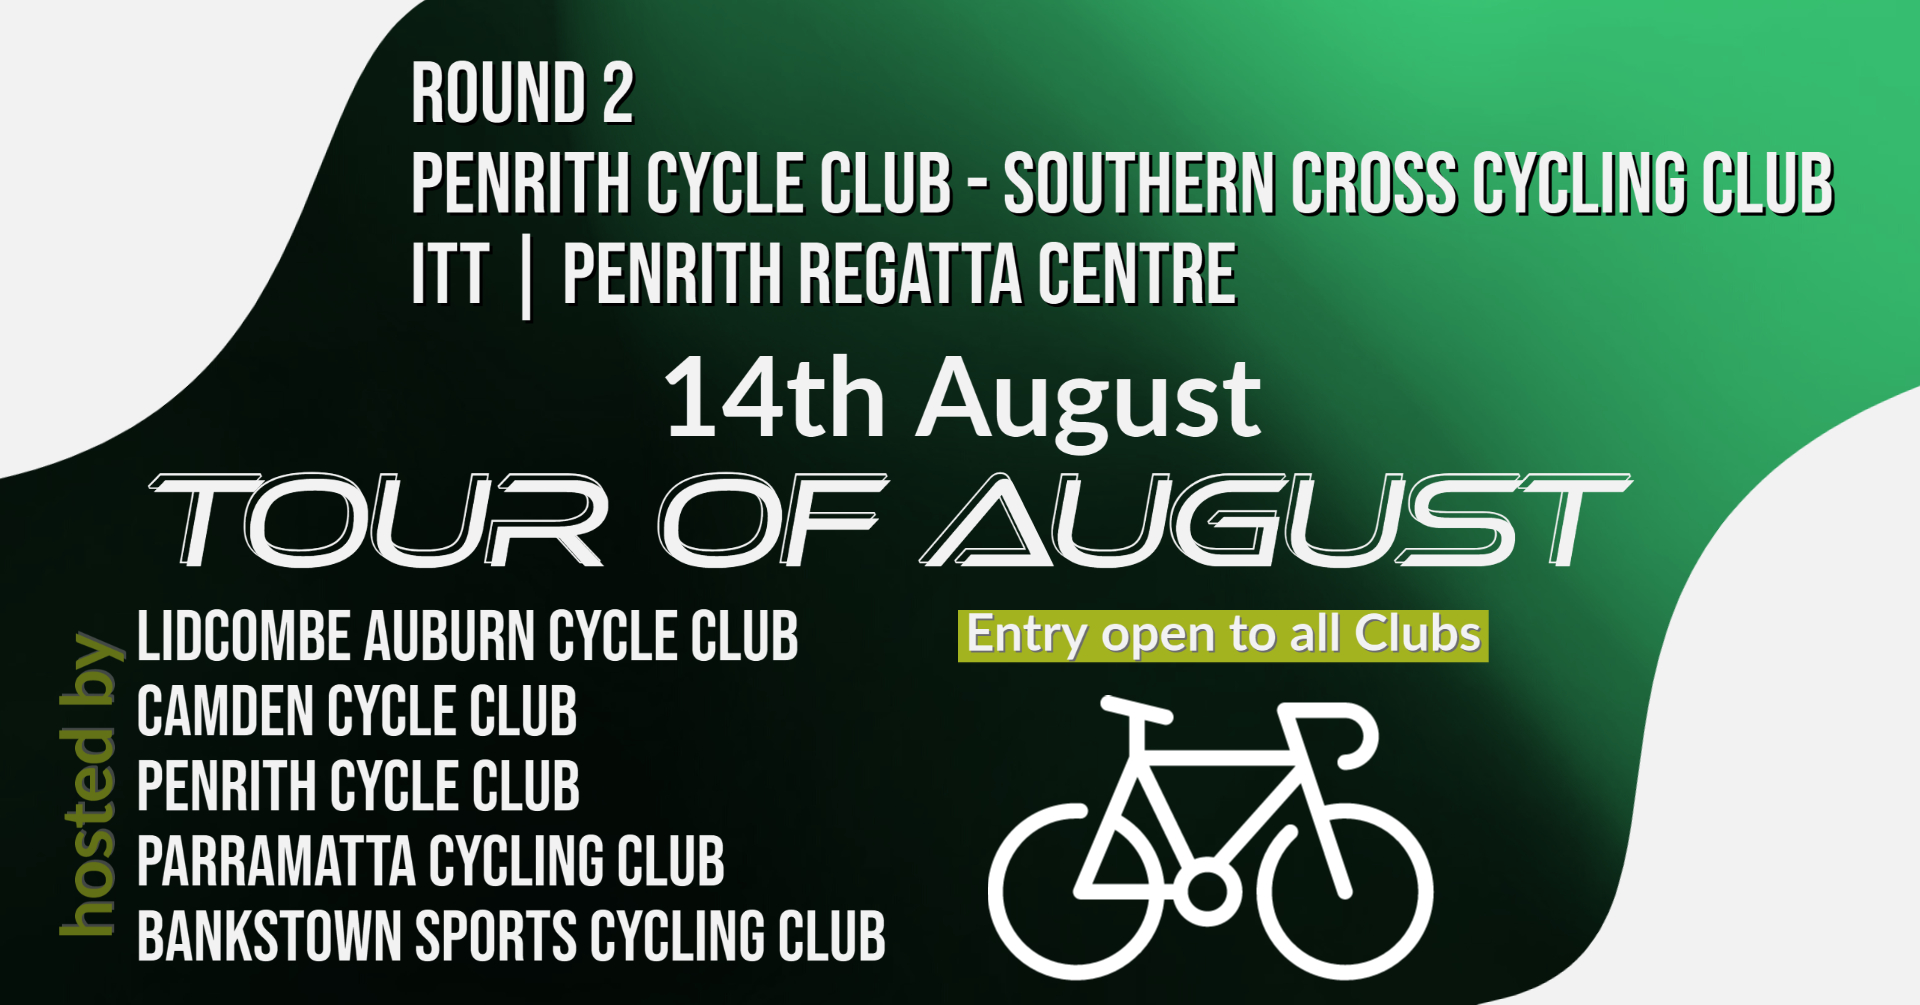 Tour of August Penrith